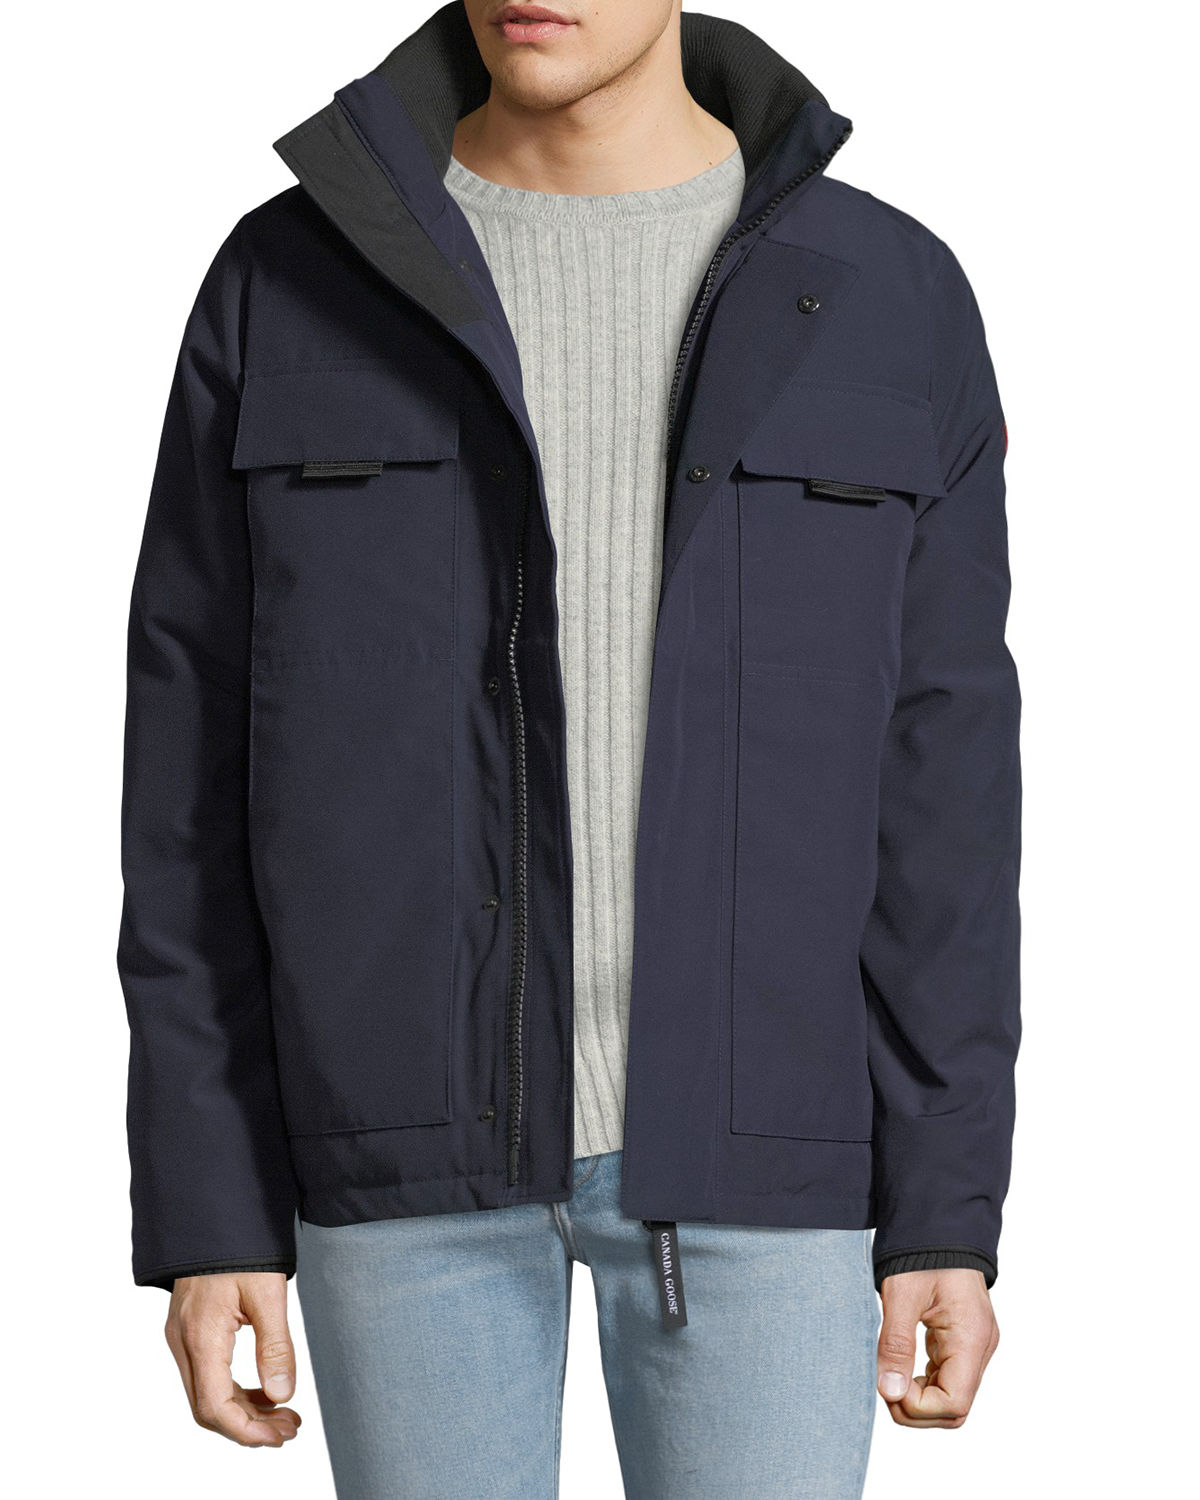 Canada Goose Jackets Men's Forester Water-Resistant Jacket